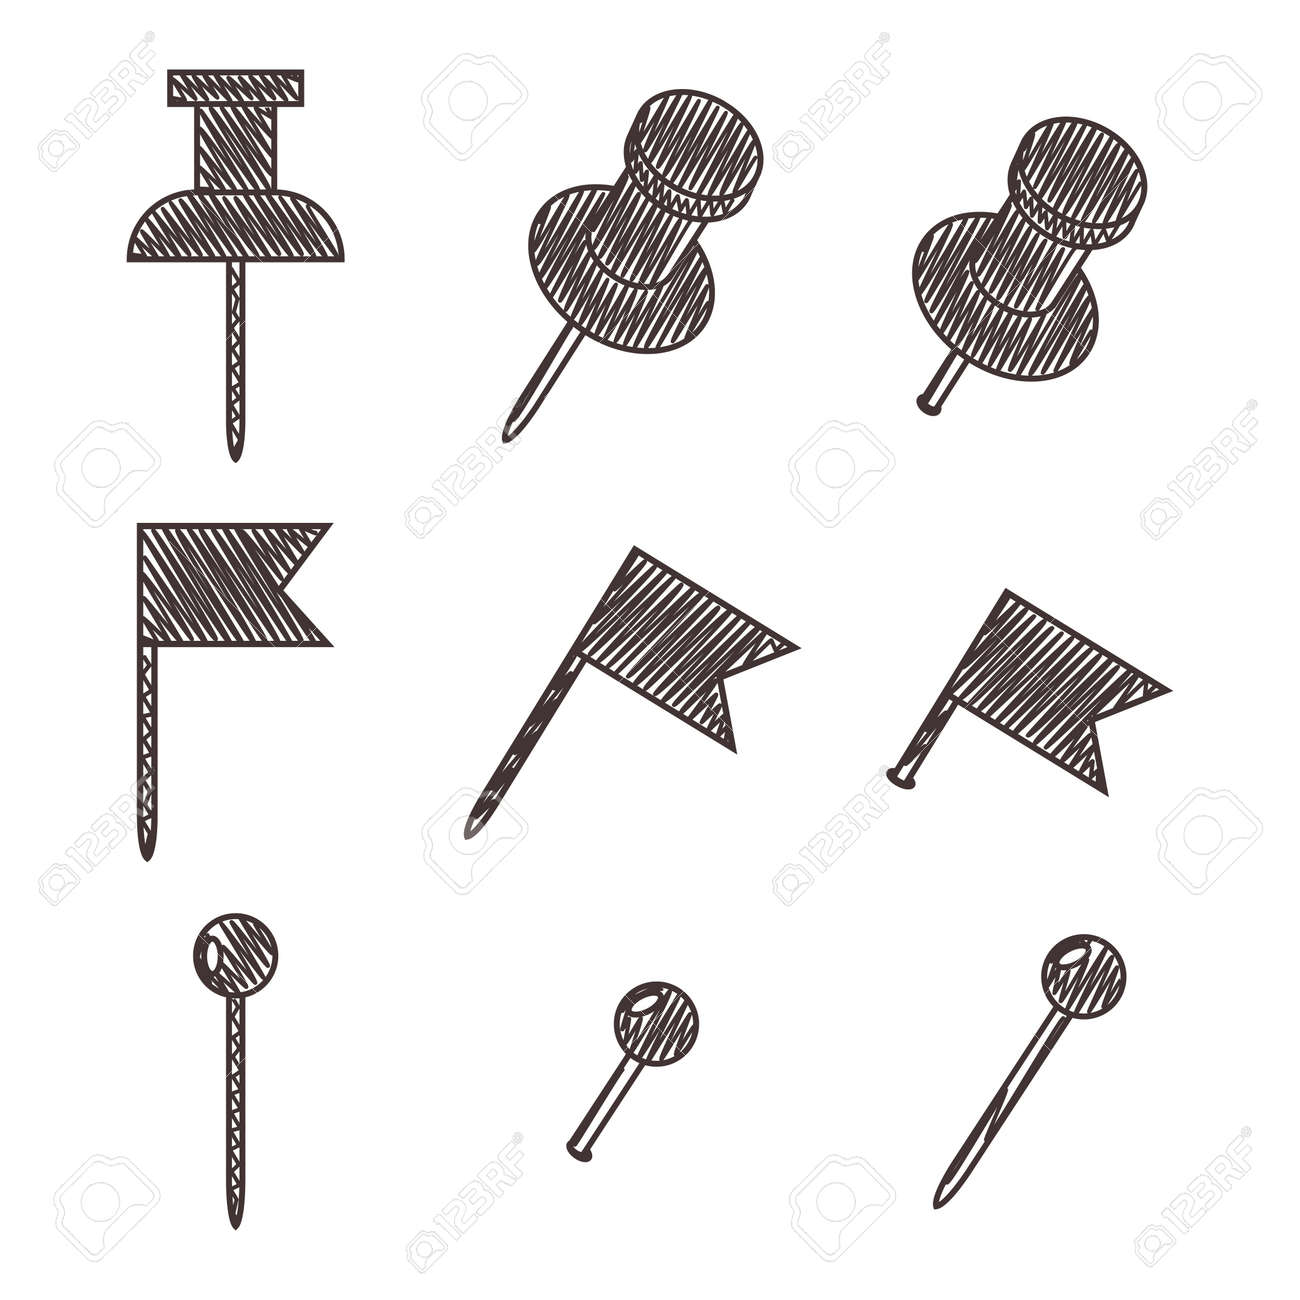 Push pin for map. Vector sketch set of office thumbtacks isolated on a white background. - 170512795